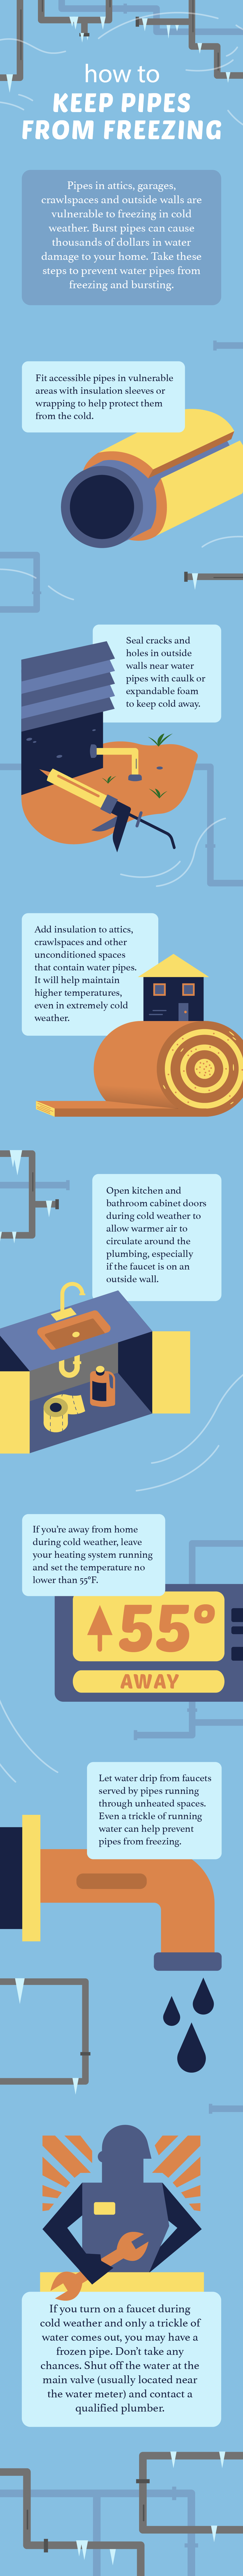 How to Keep Pipes From Freezing Infographic